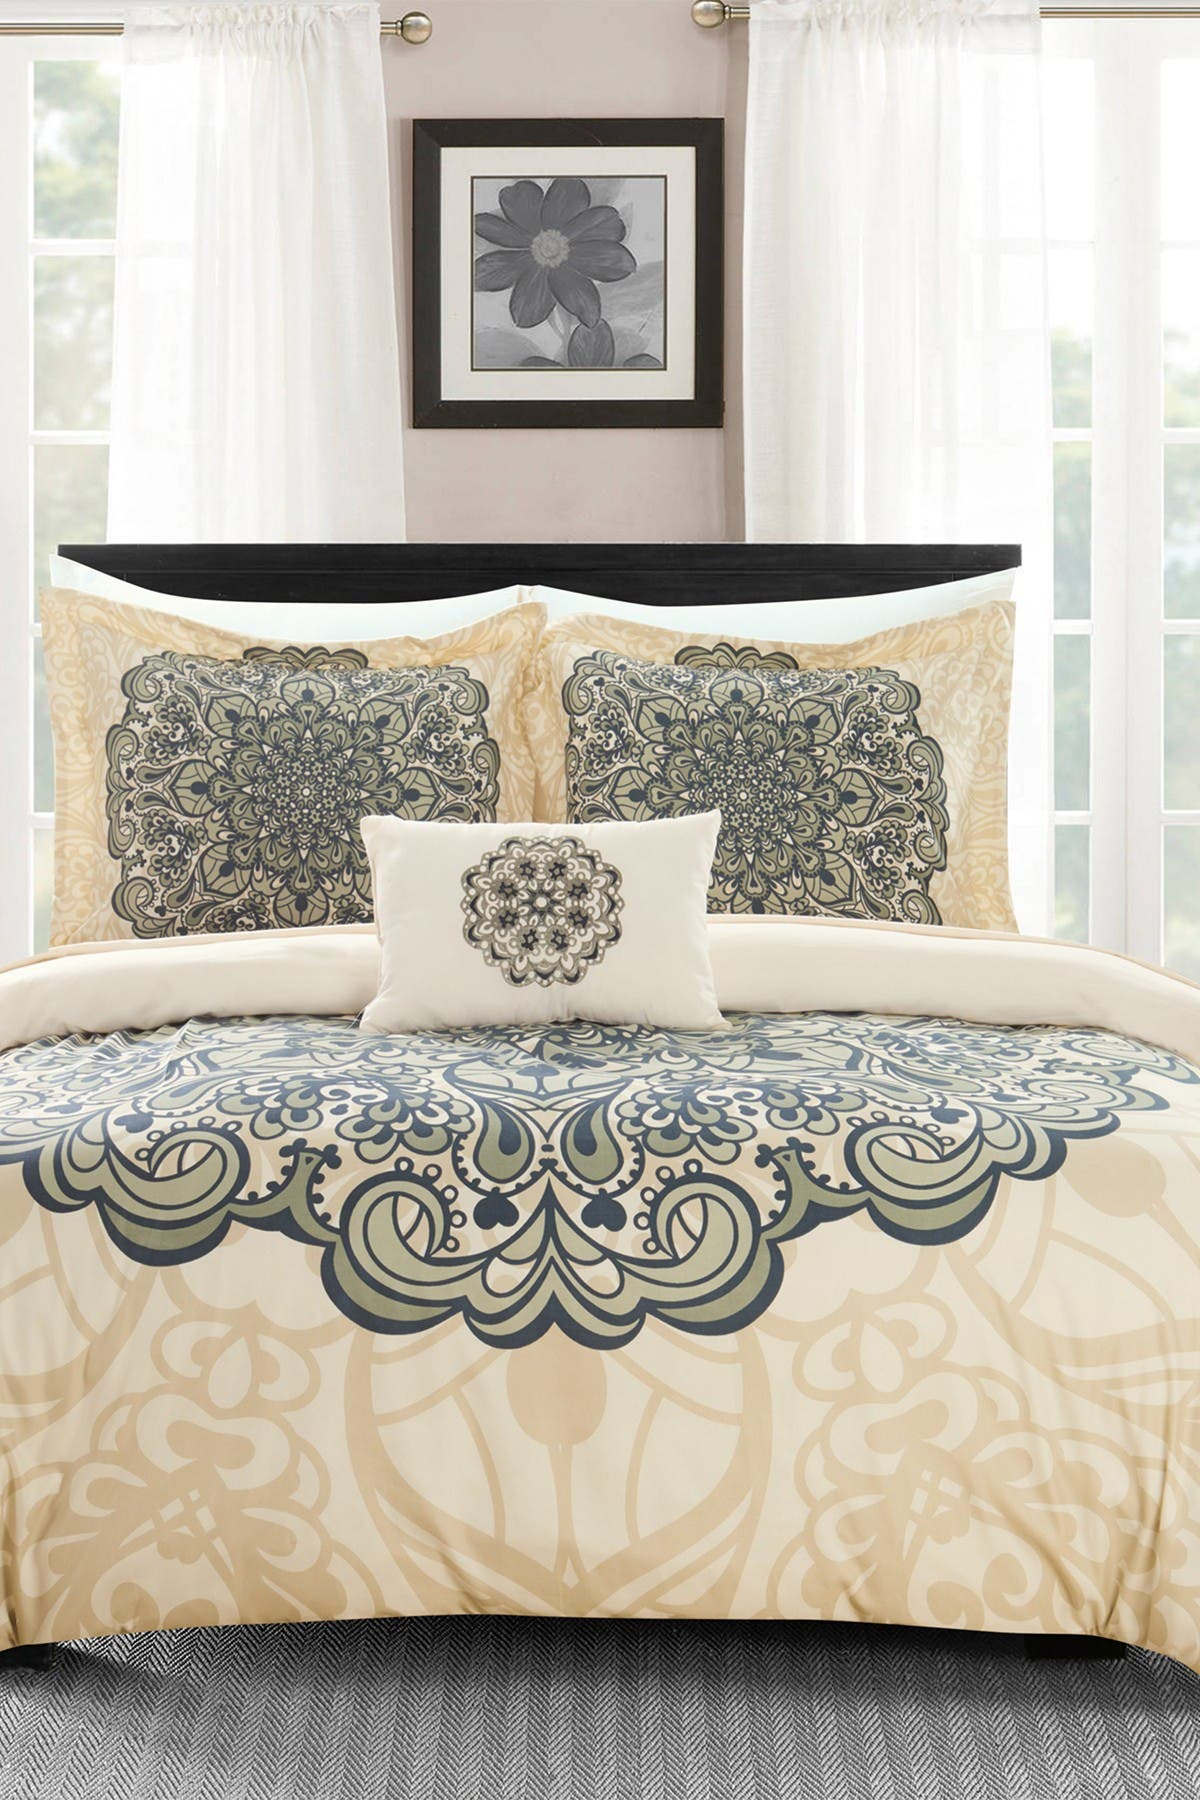 Chic Home Bedding Queen Carlie Reversible Boho Inspired Large Scale Medallion Print Design Duvet Cover 4 Piece Set Beige Nordstrom Rack